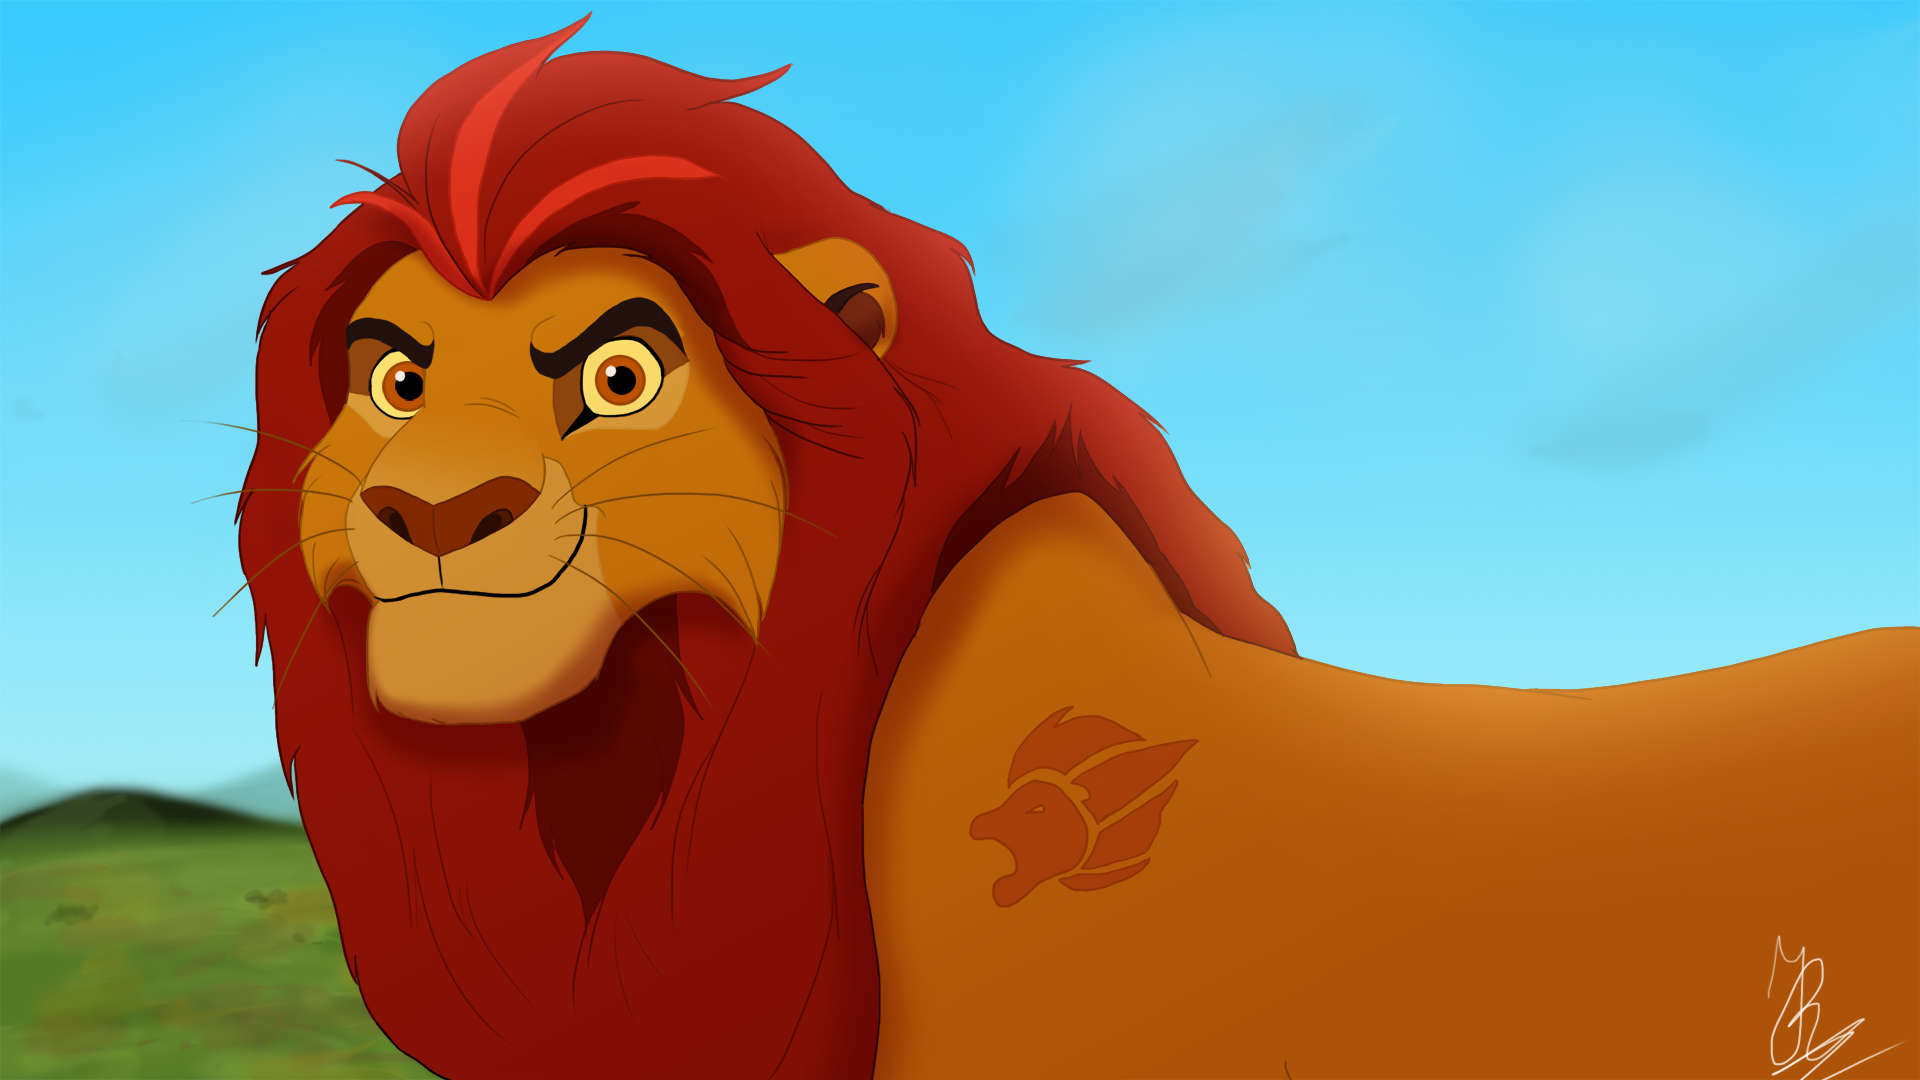 The leader of the Lion Guard